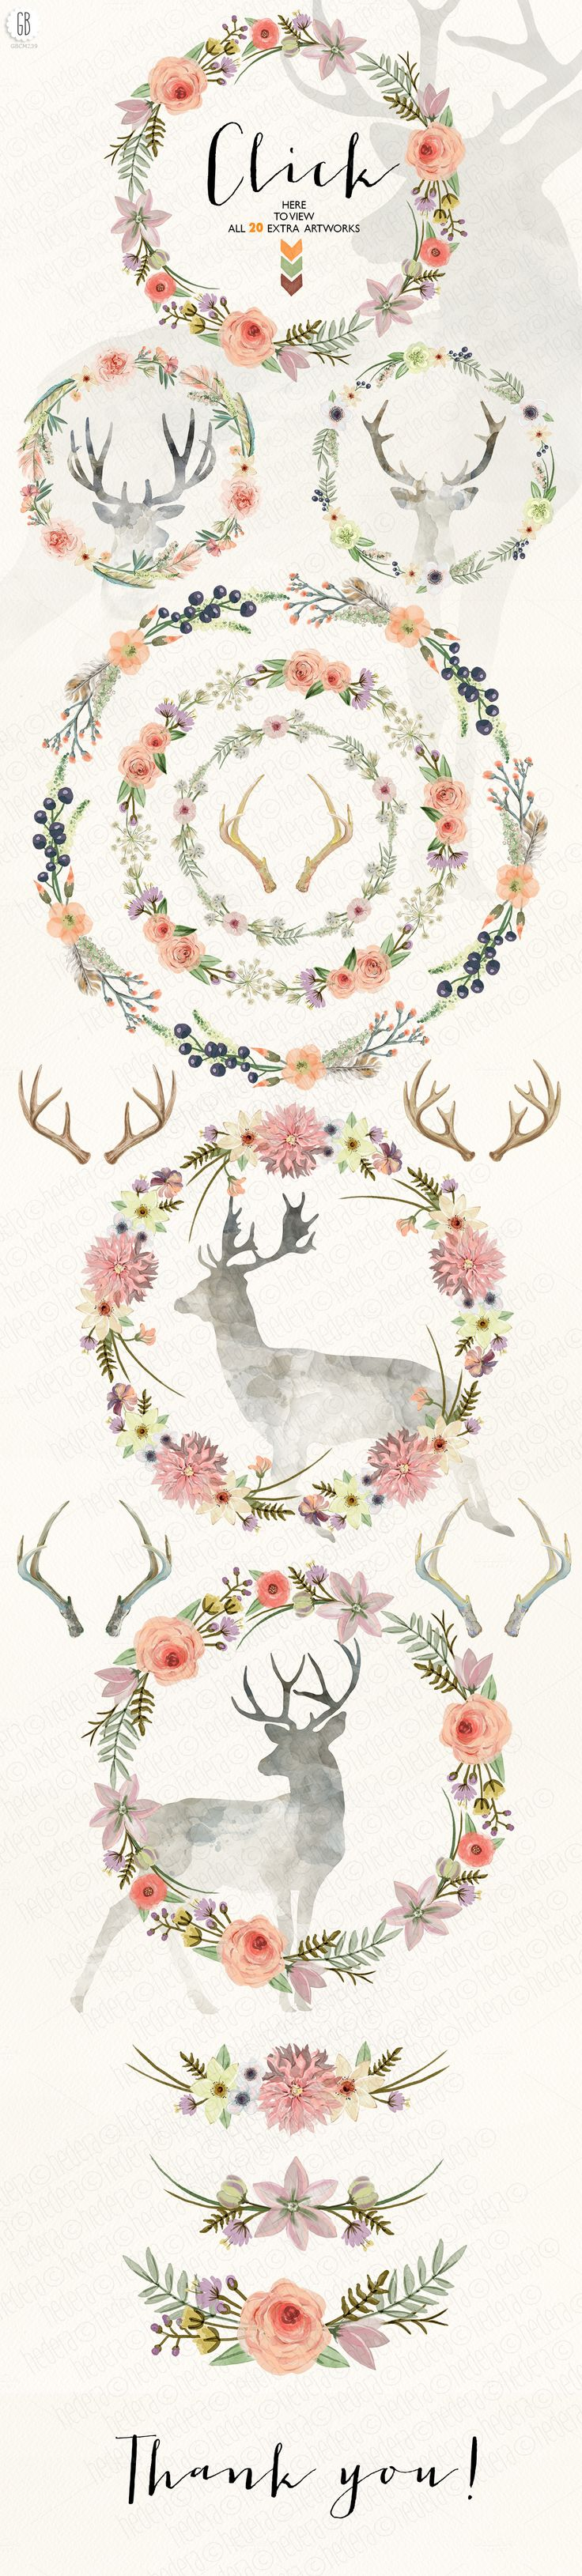 BUNDLE Complete Wild collection + by GrafikBoutique on Creative Market